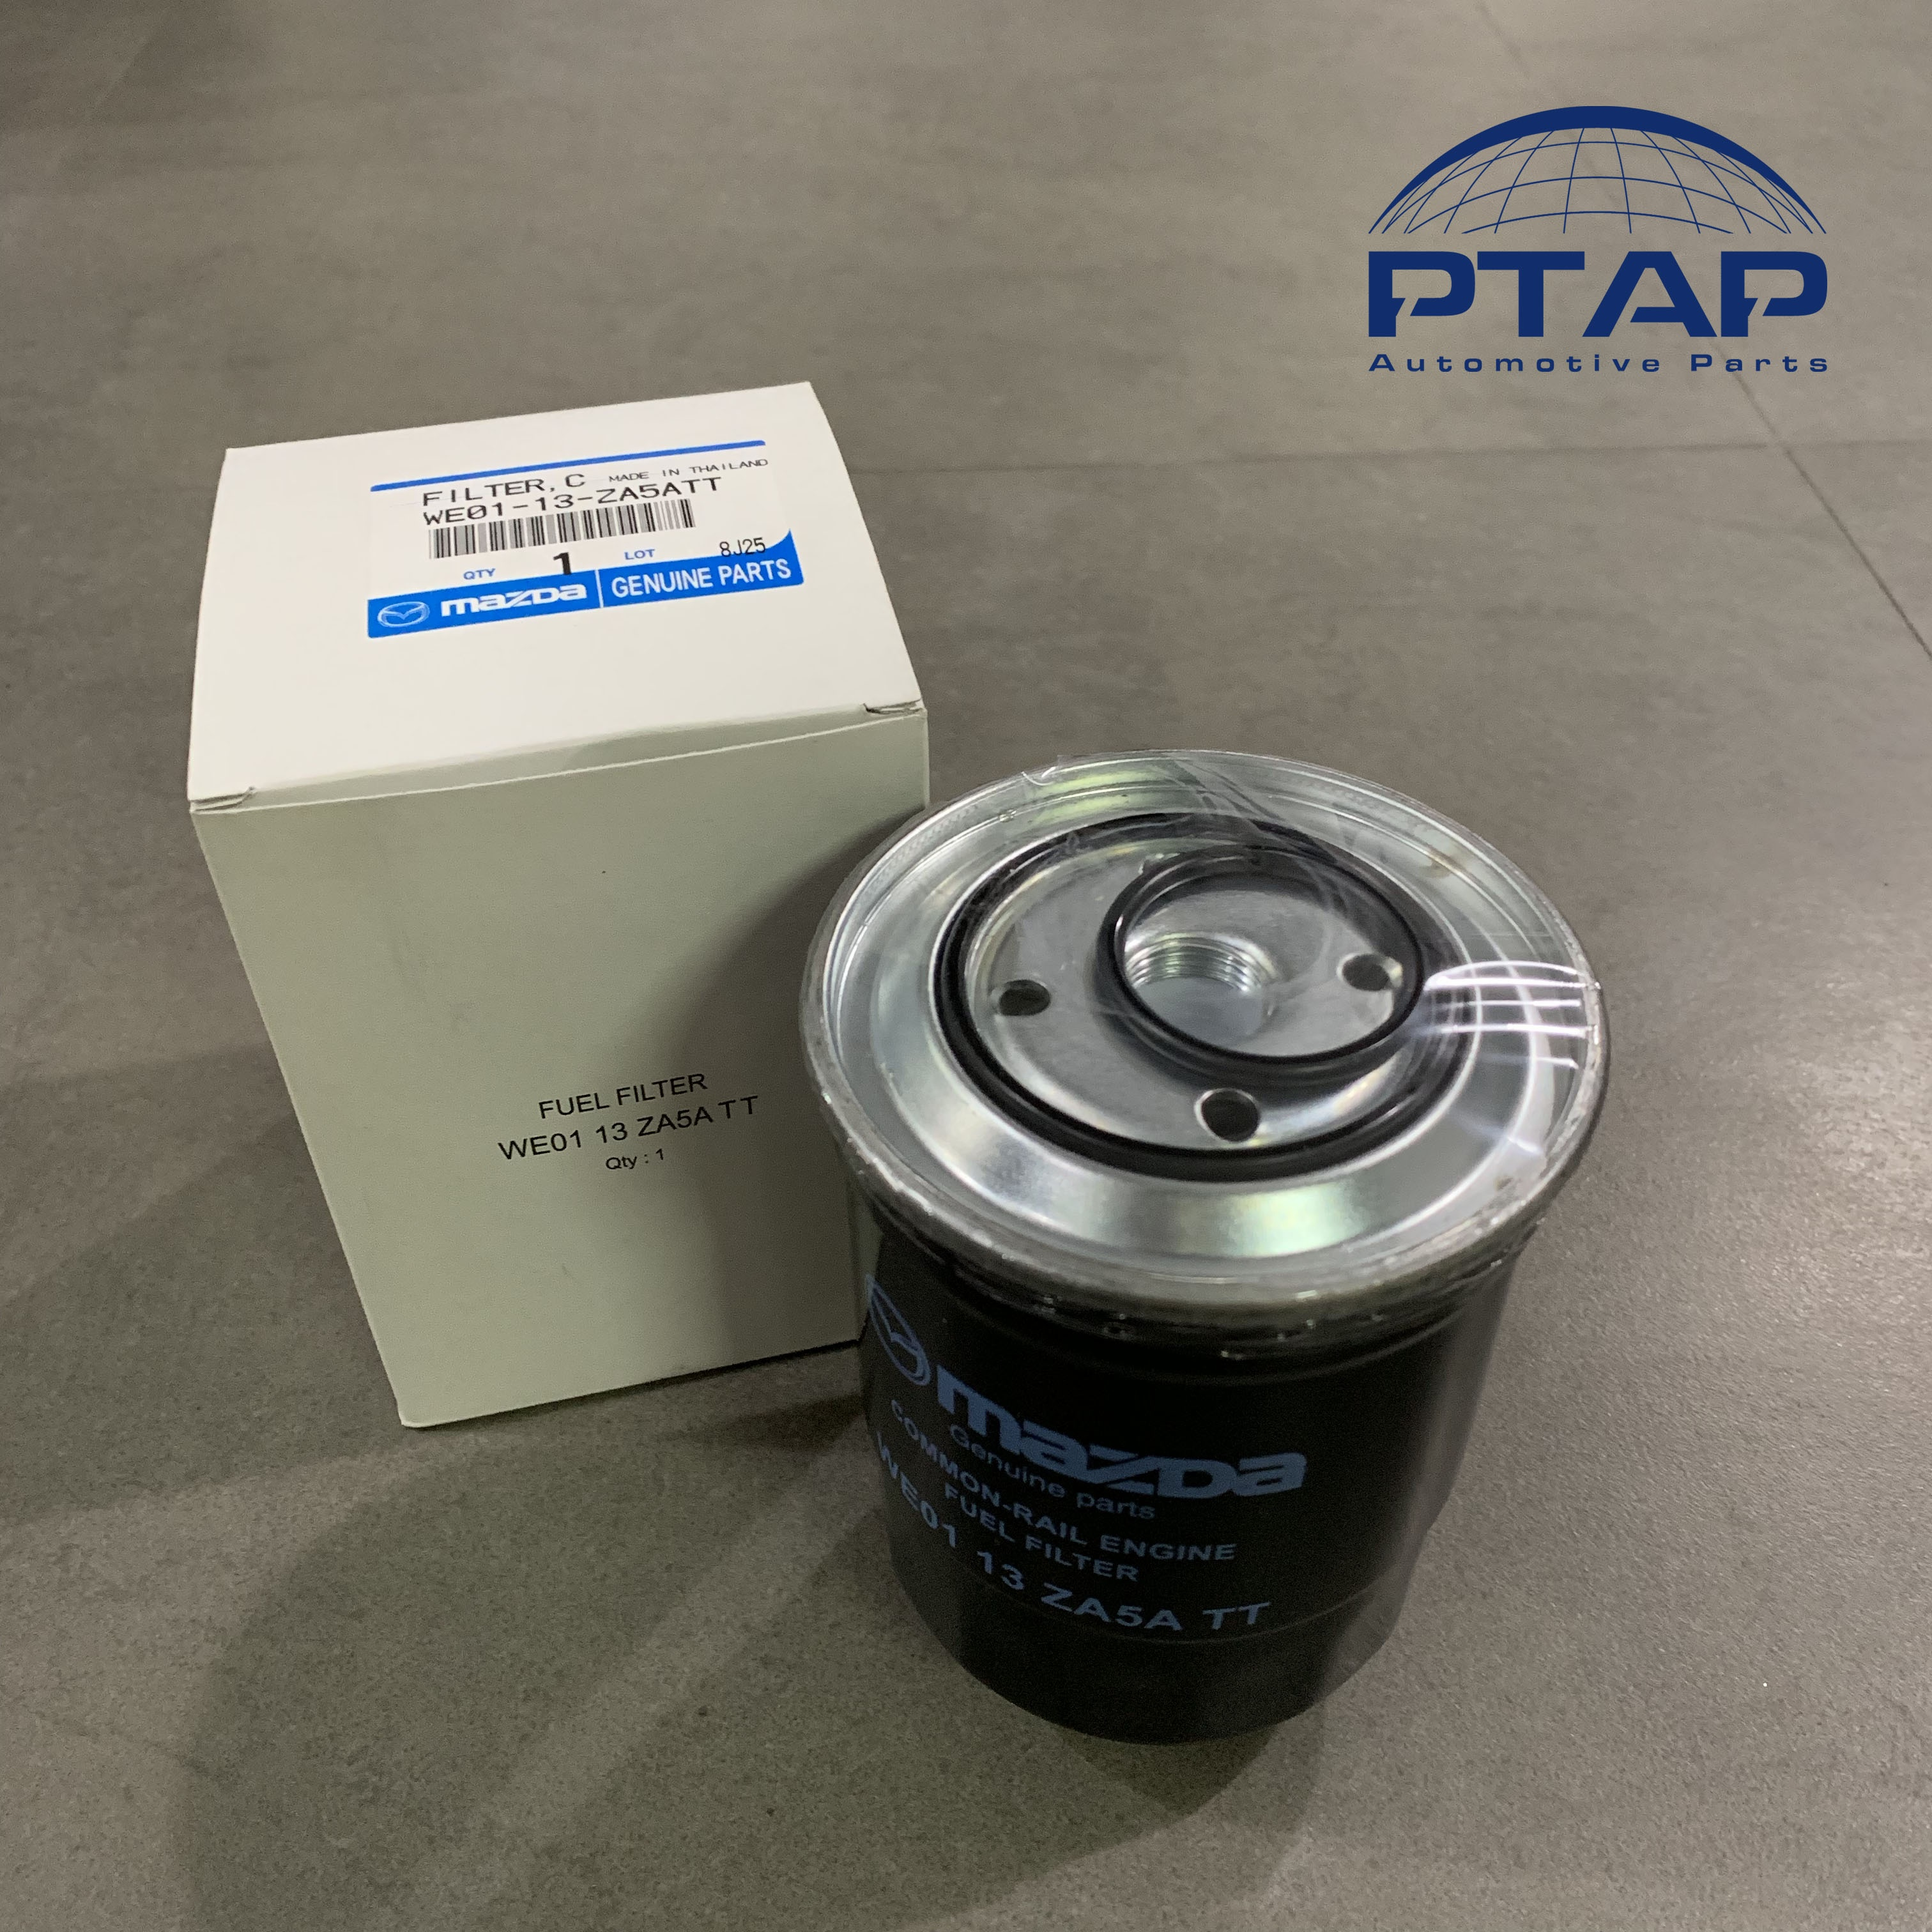 Thailand Mazda Parts, Thailand Mazda Parts Manufacturers and